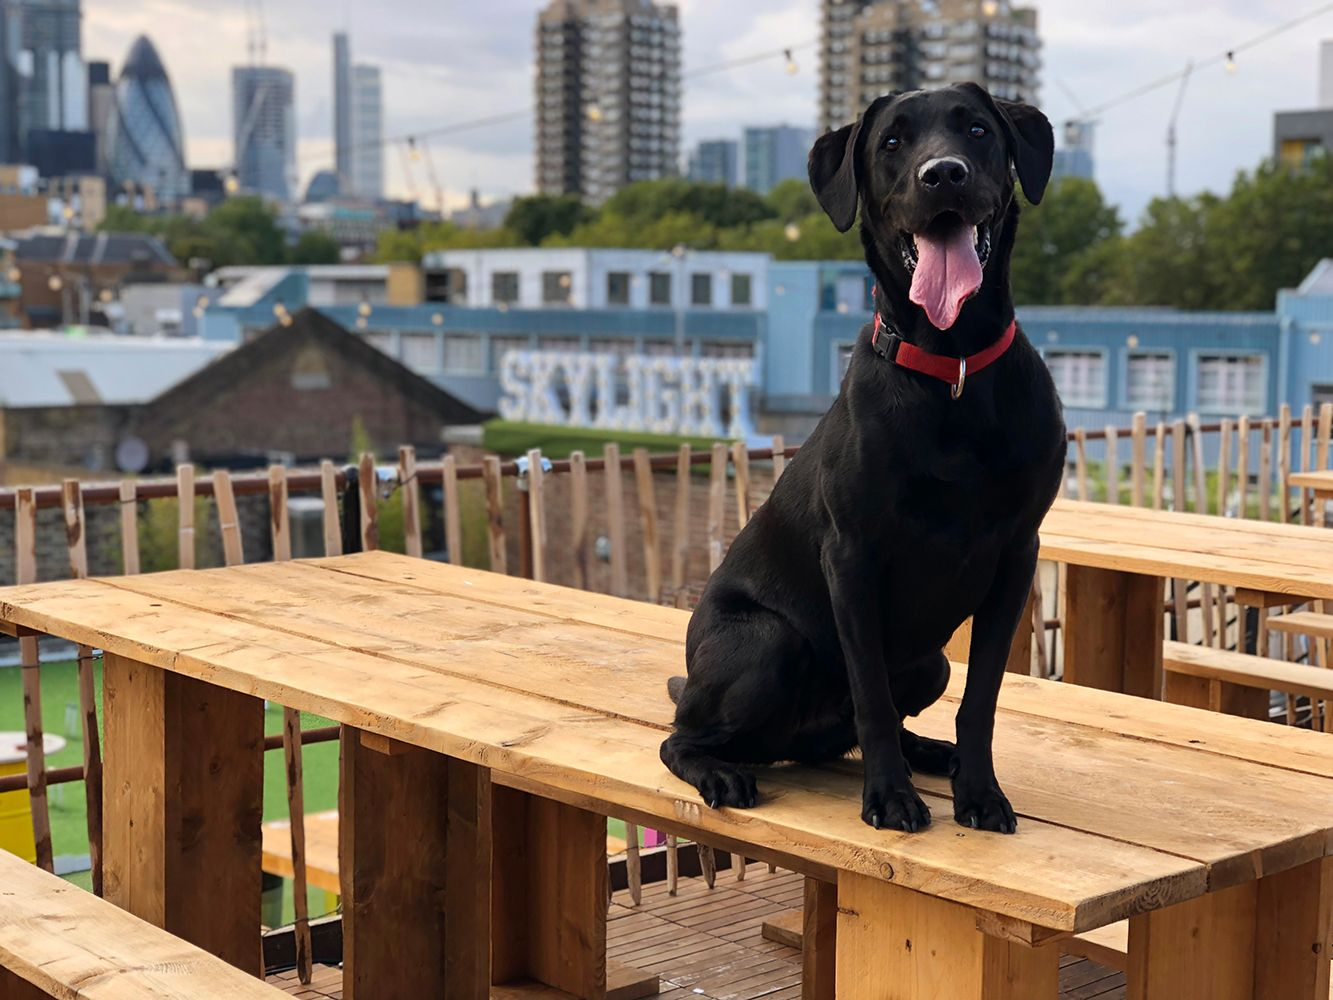 Dog Day at Skylight,London